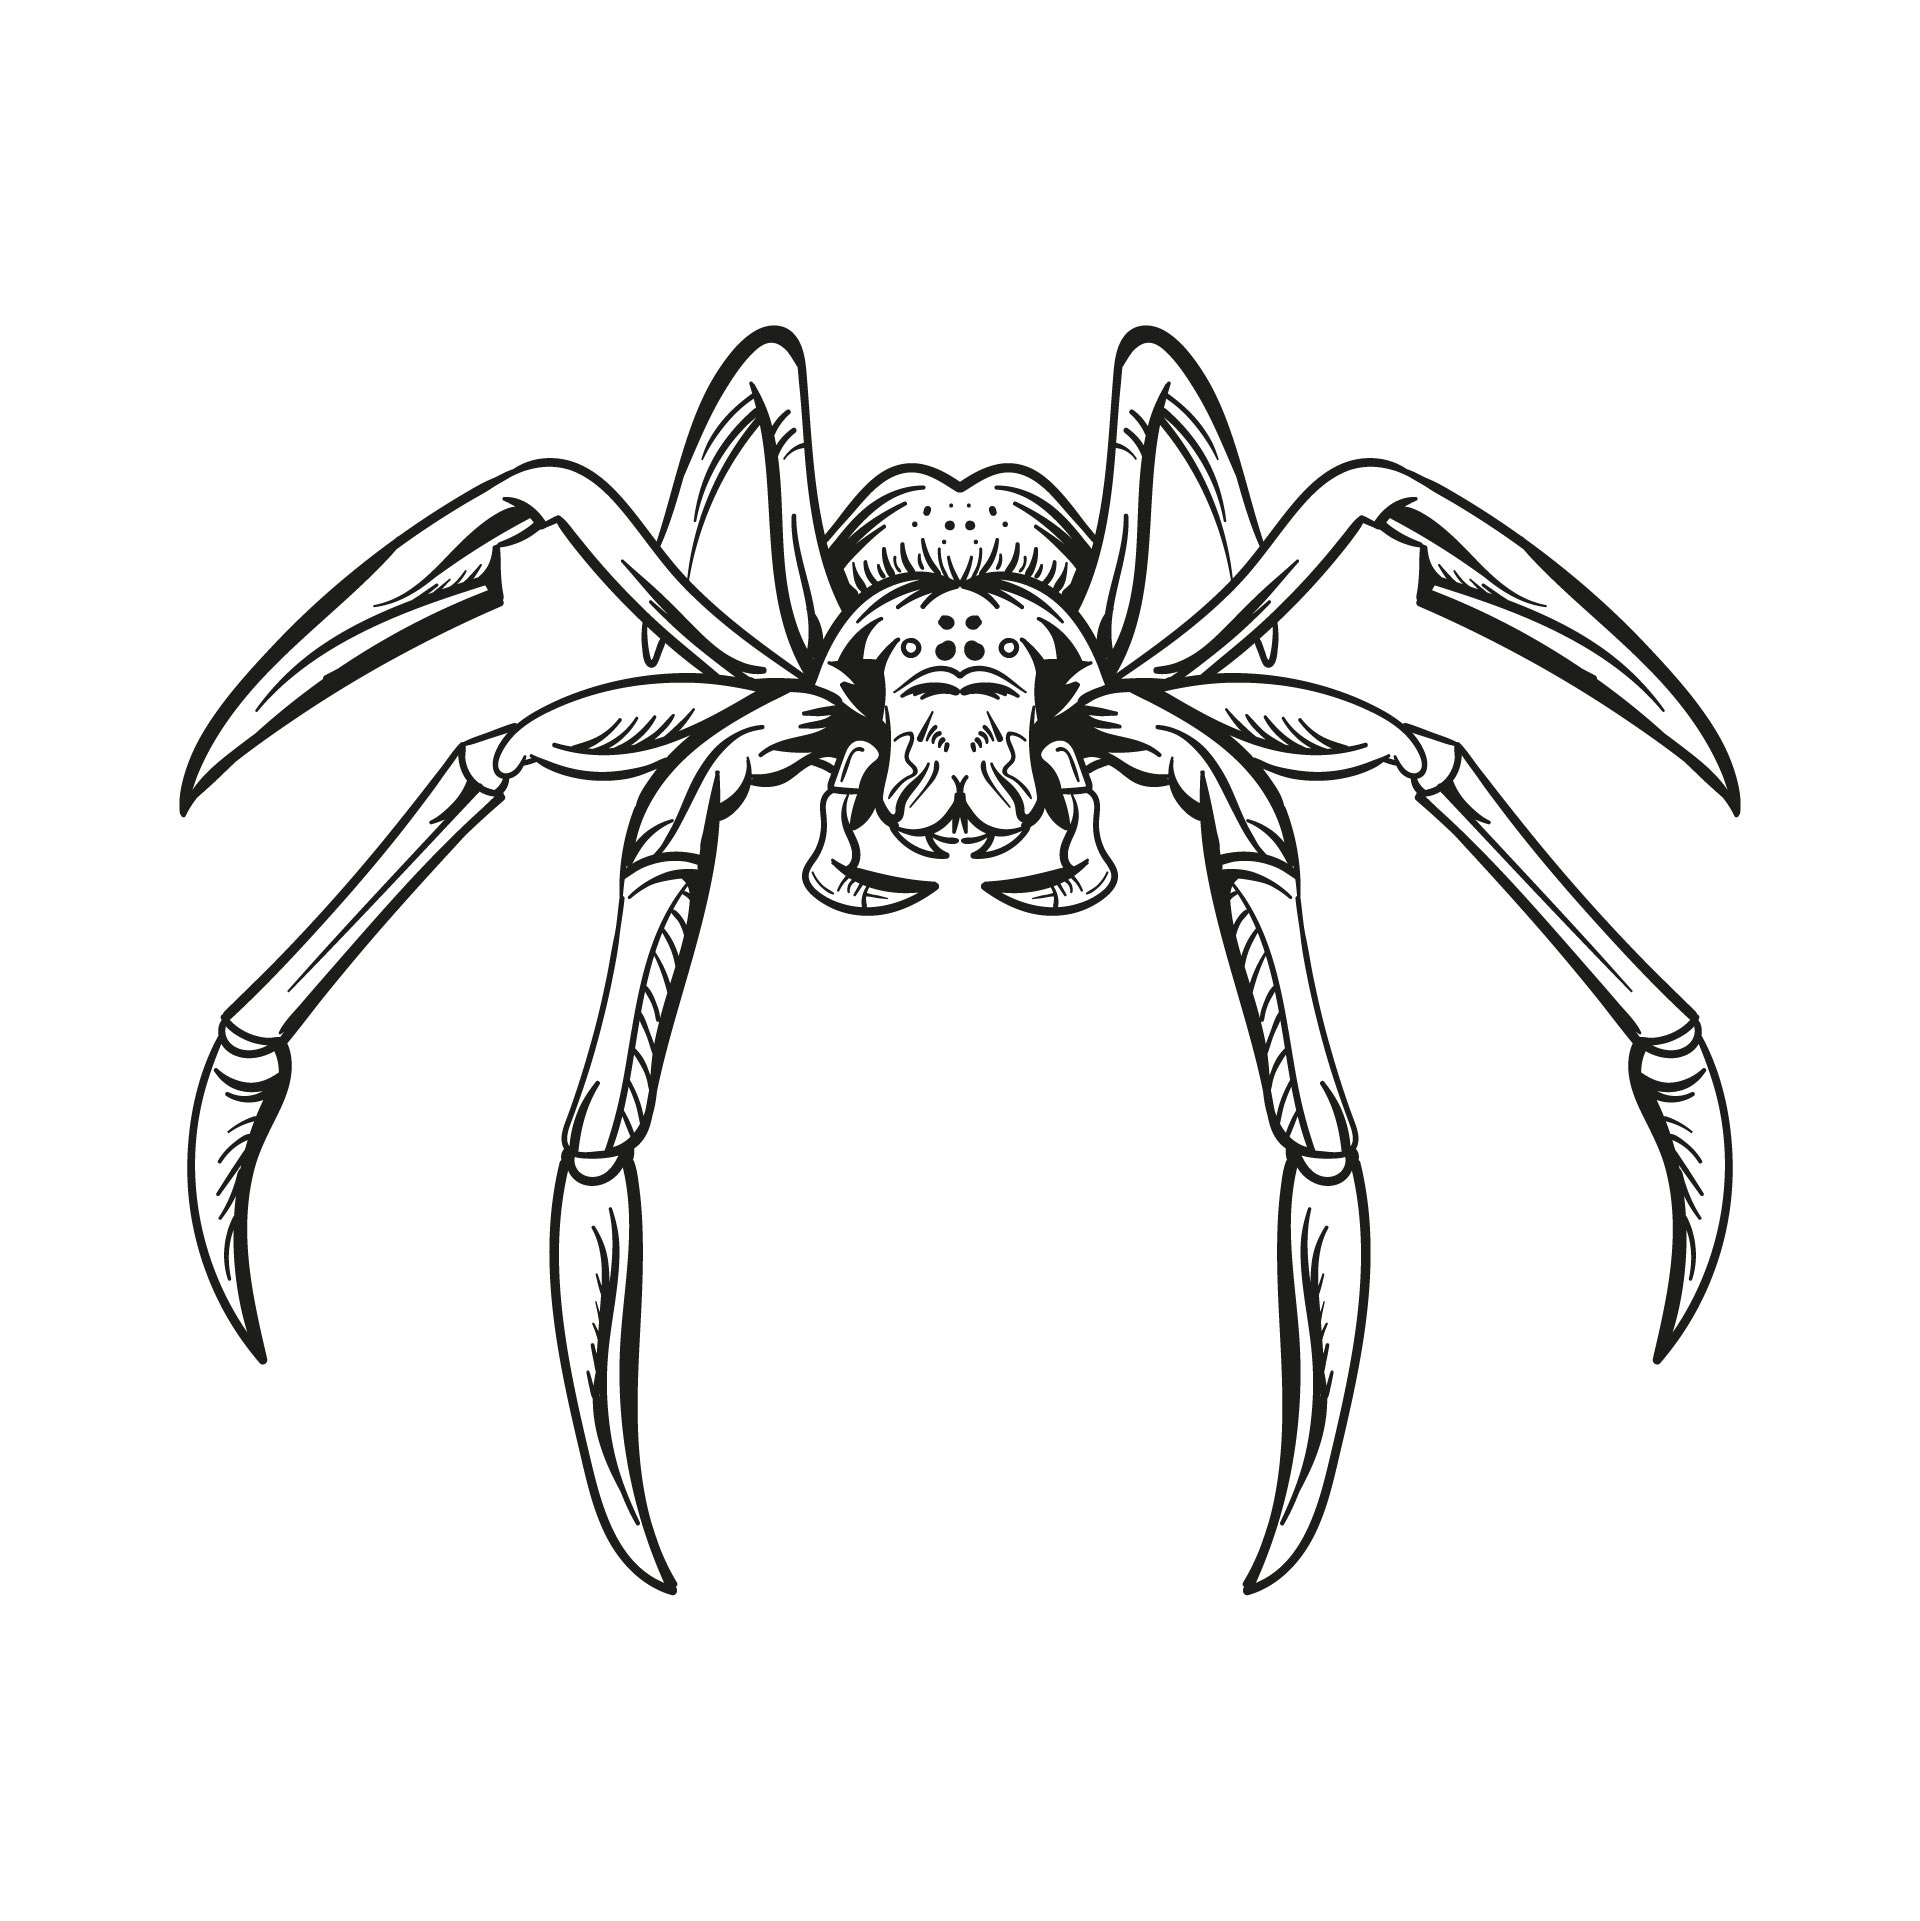 7 Best Images Of Spiders For Halloween Printable